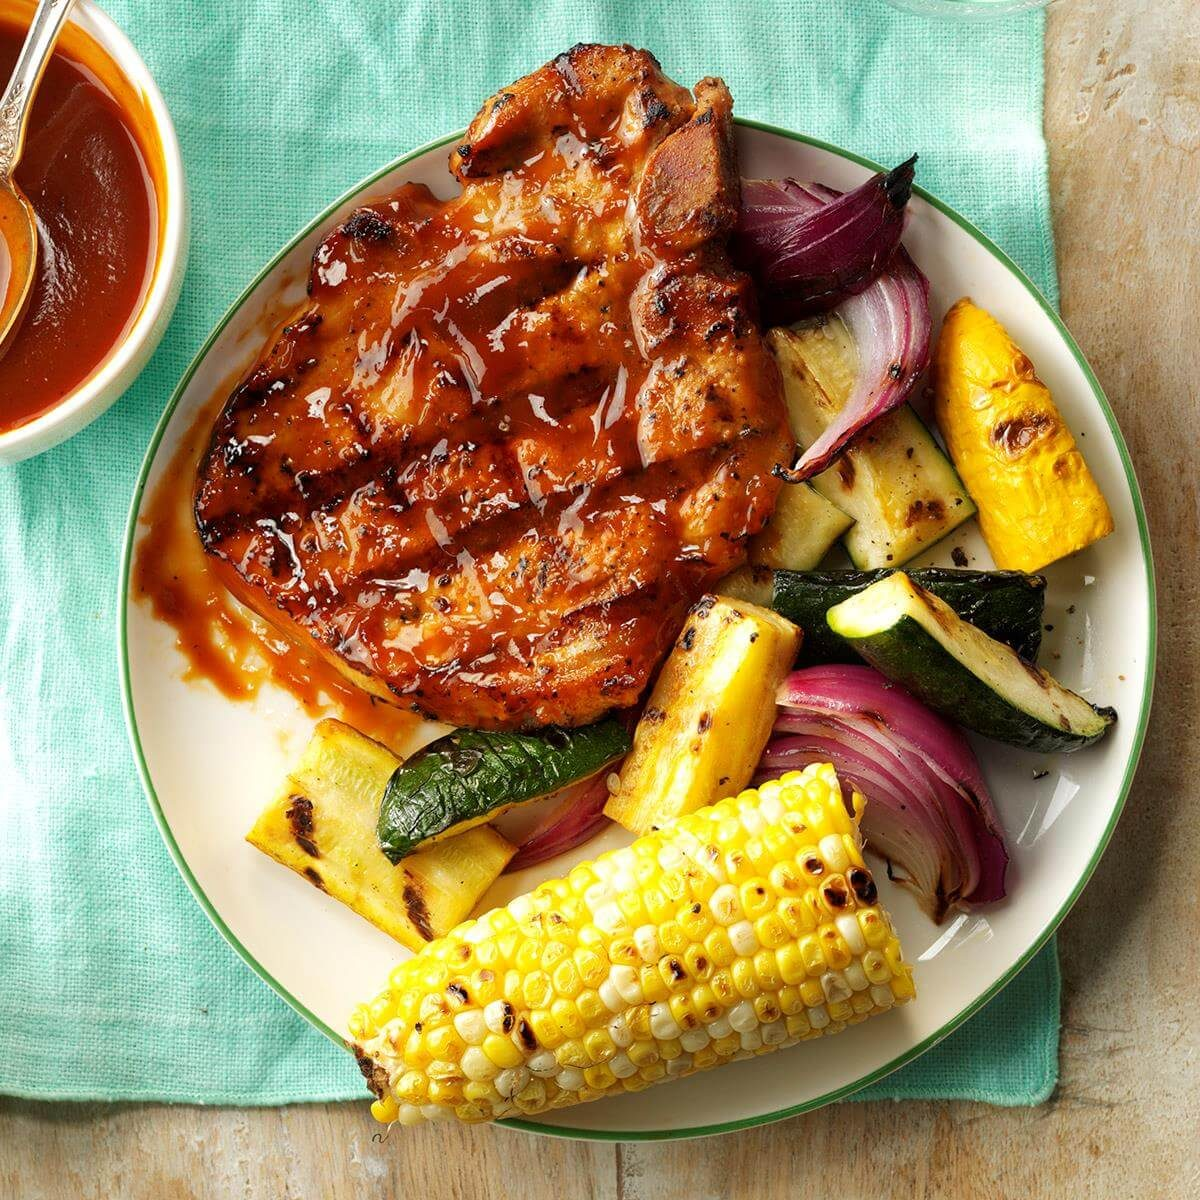 Grilled Pork Chops With Smokin' Sauce Recipe